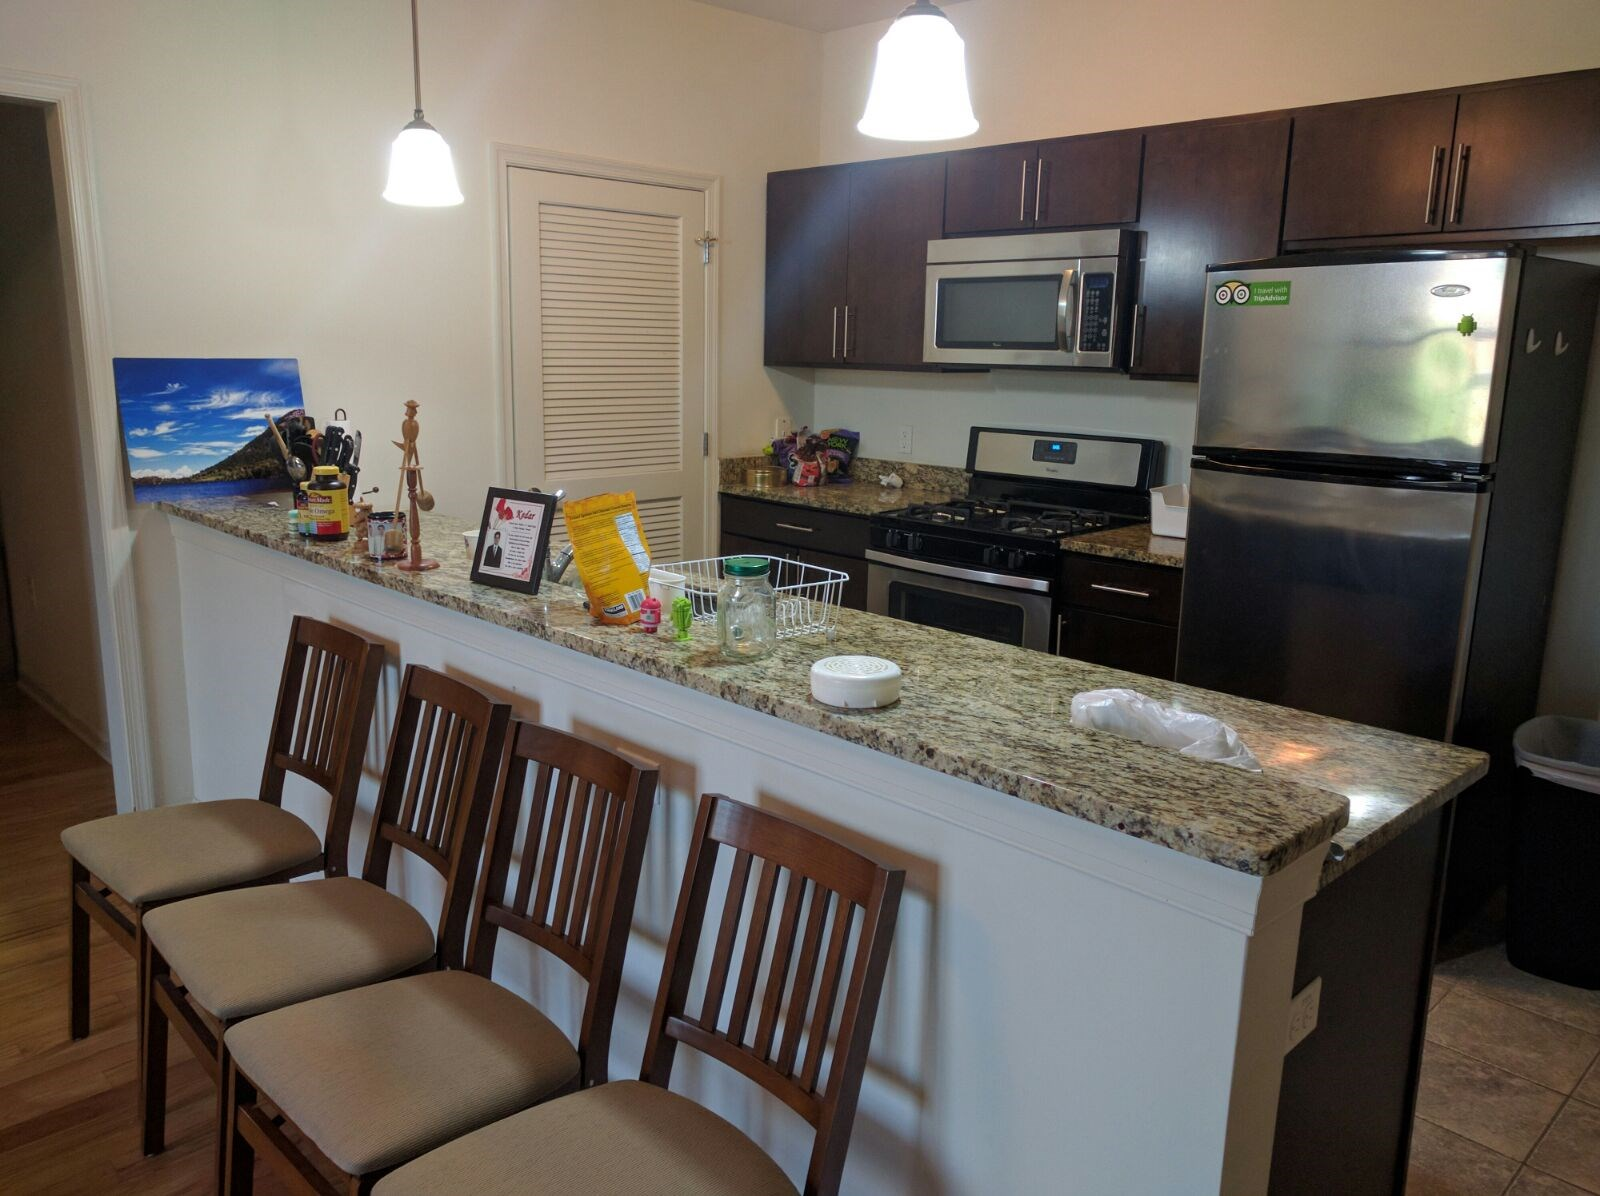 House for rent in jersey city nj apartments flats - One bedroom apartment for rent in nj ...